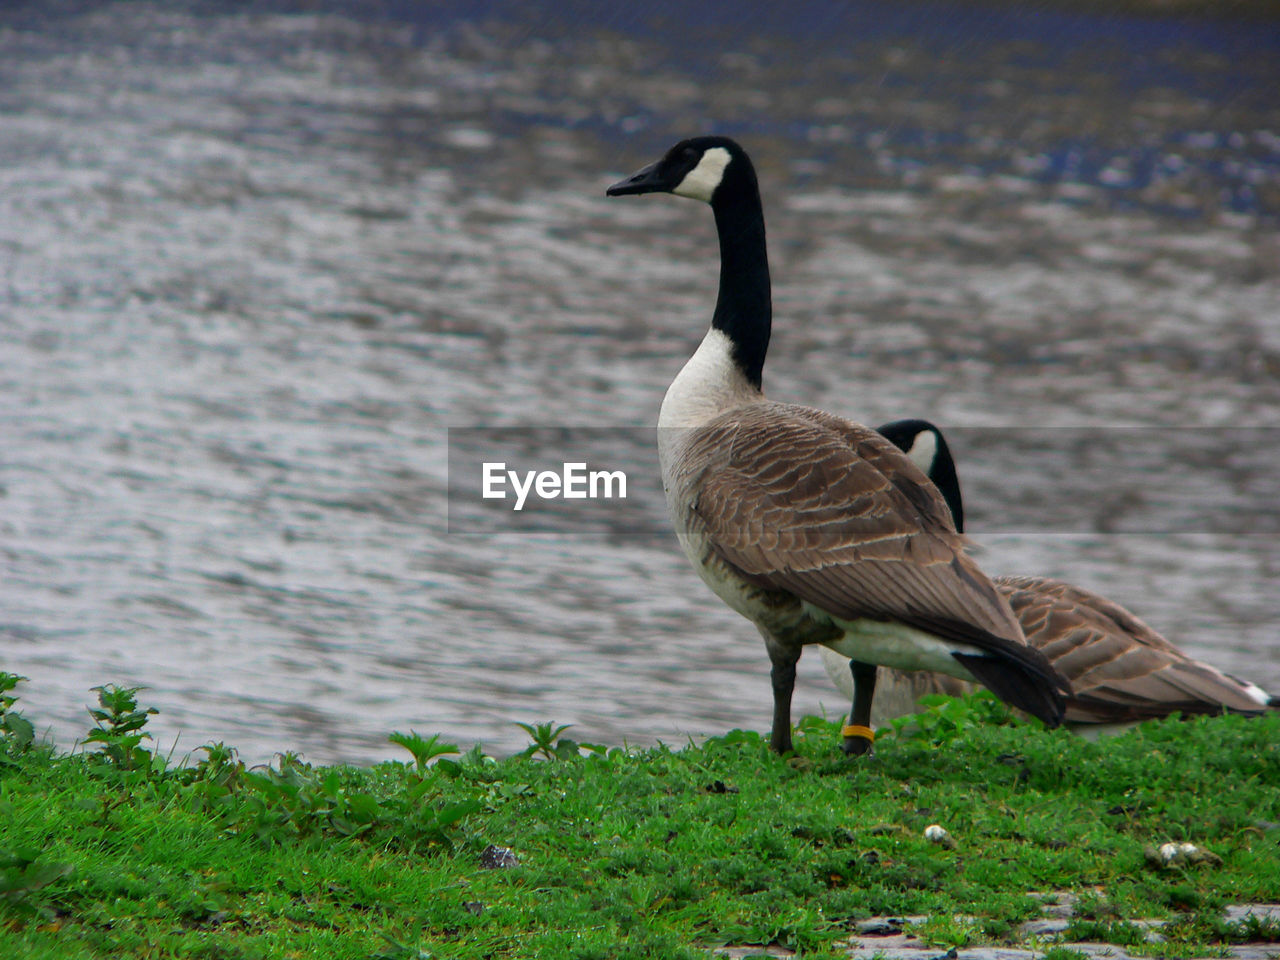 animals in the wild, animal wildlife, bird, animal themes, animal, vertebrate, goose, one animal, water, nature, canada goose, no people, land, grass, day, plant, lake, beach, water bird